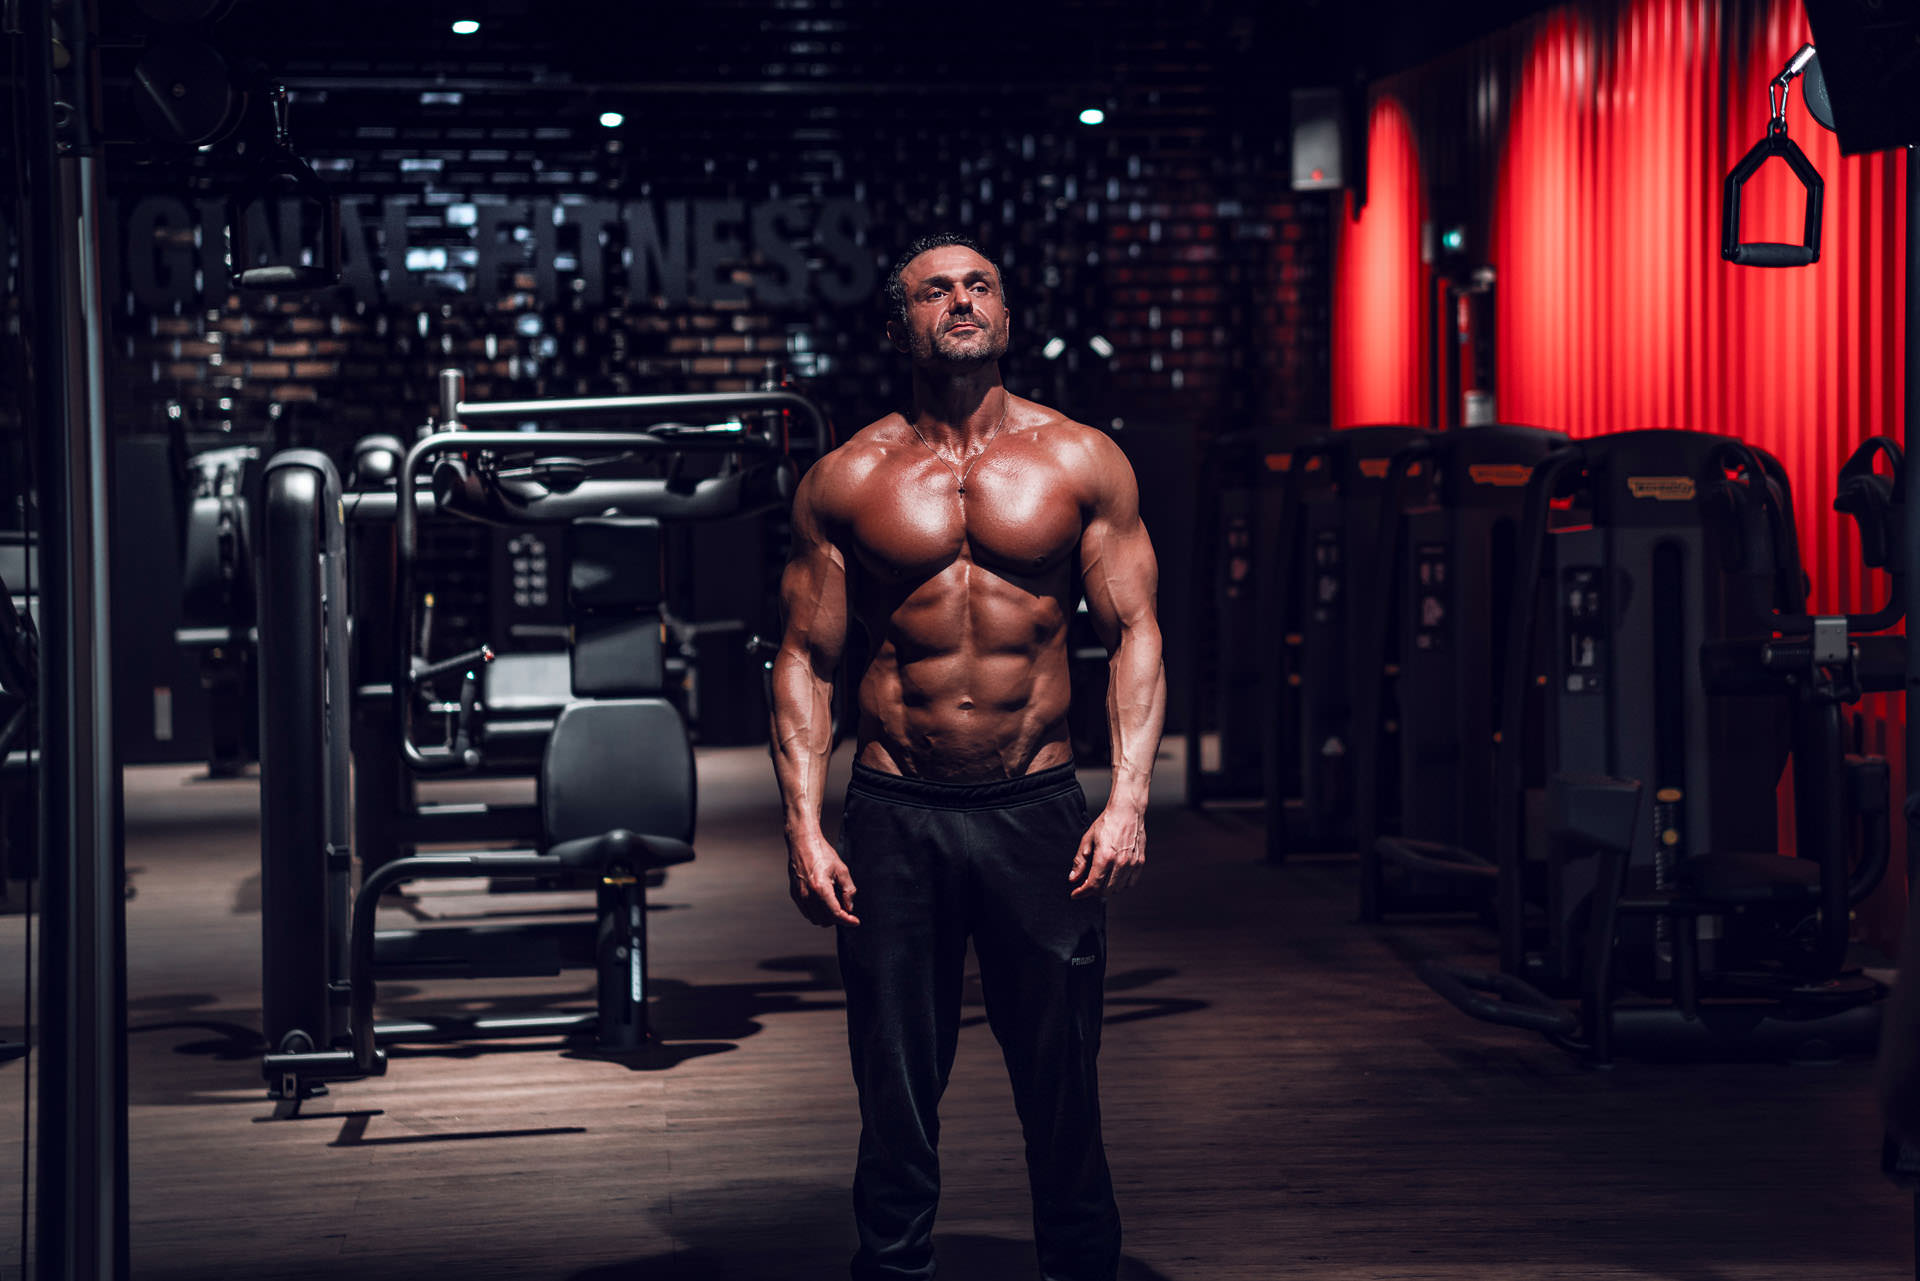 2019-03-04 - Enzo - Muscle & Fitness - 06848 - 1920px